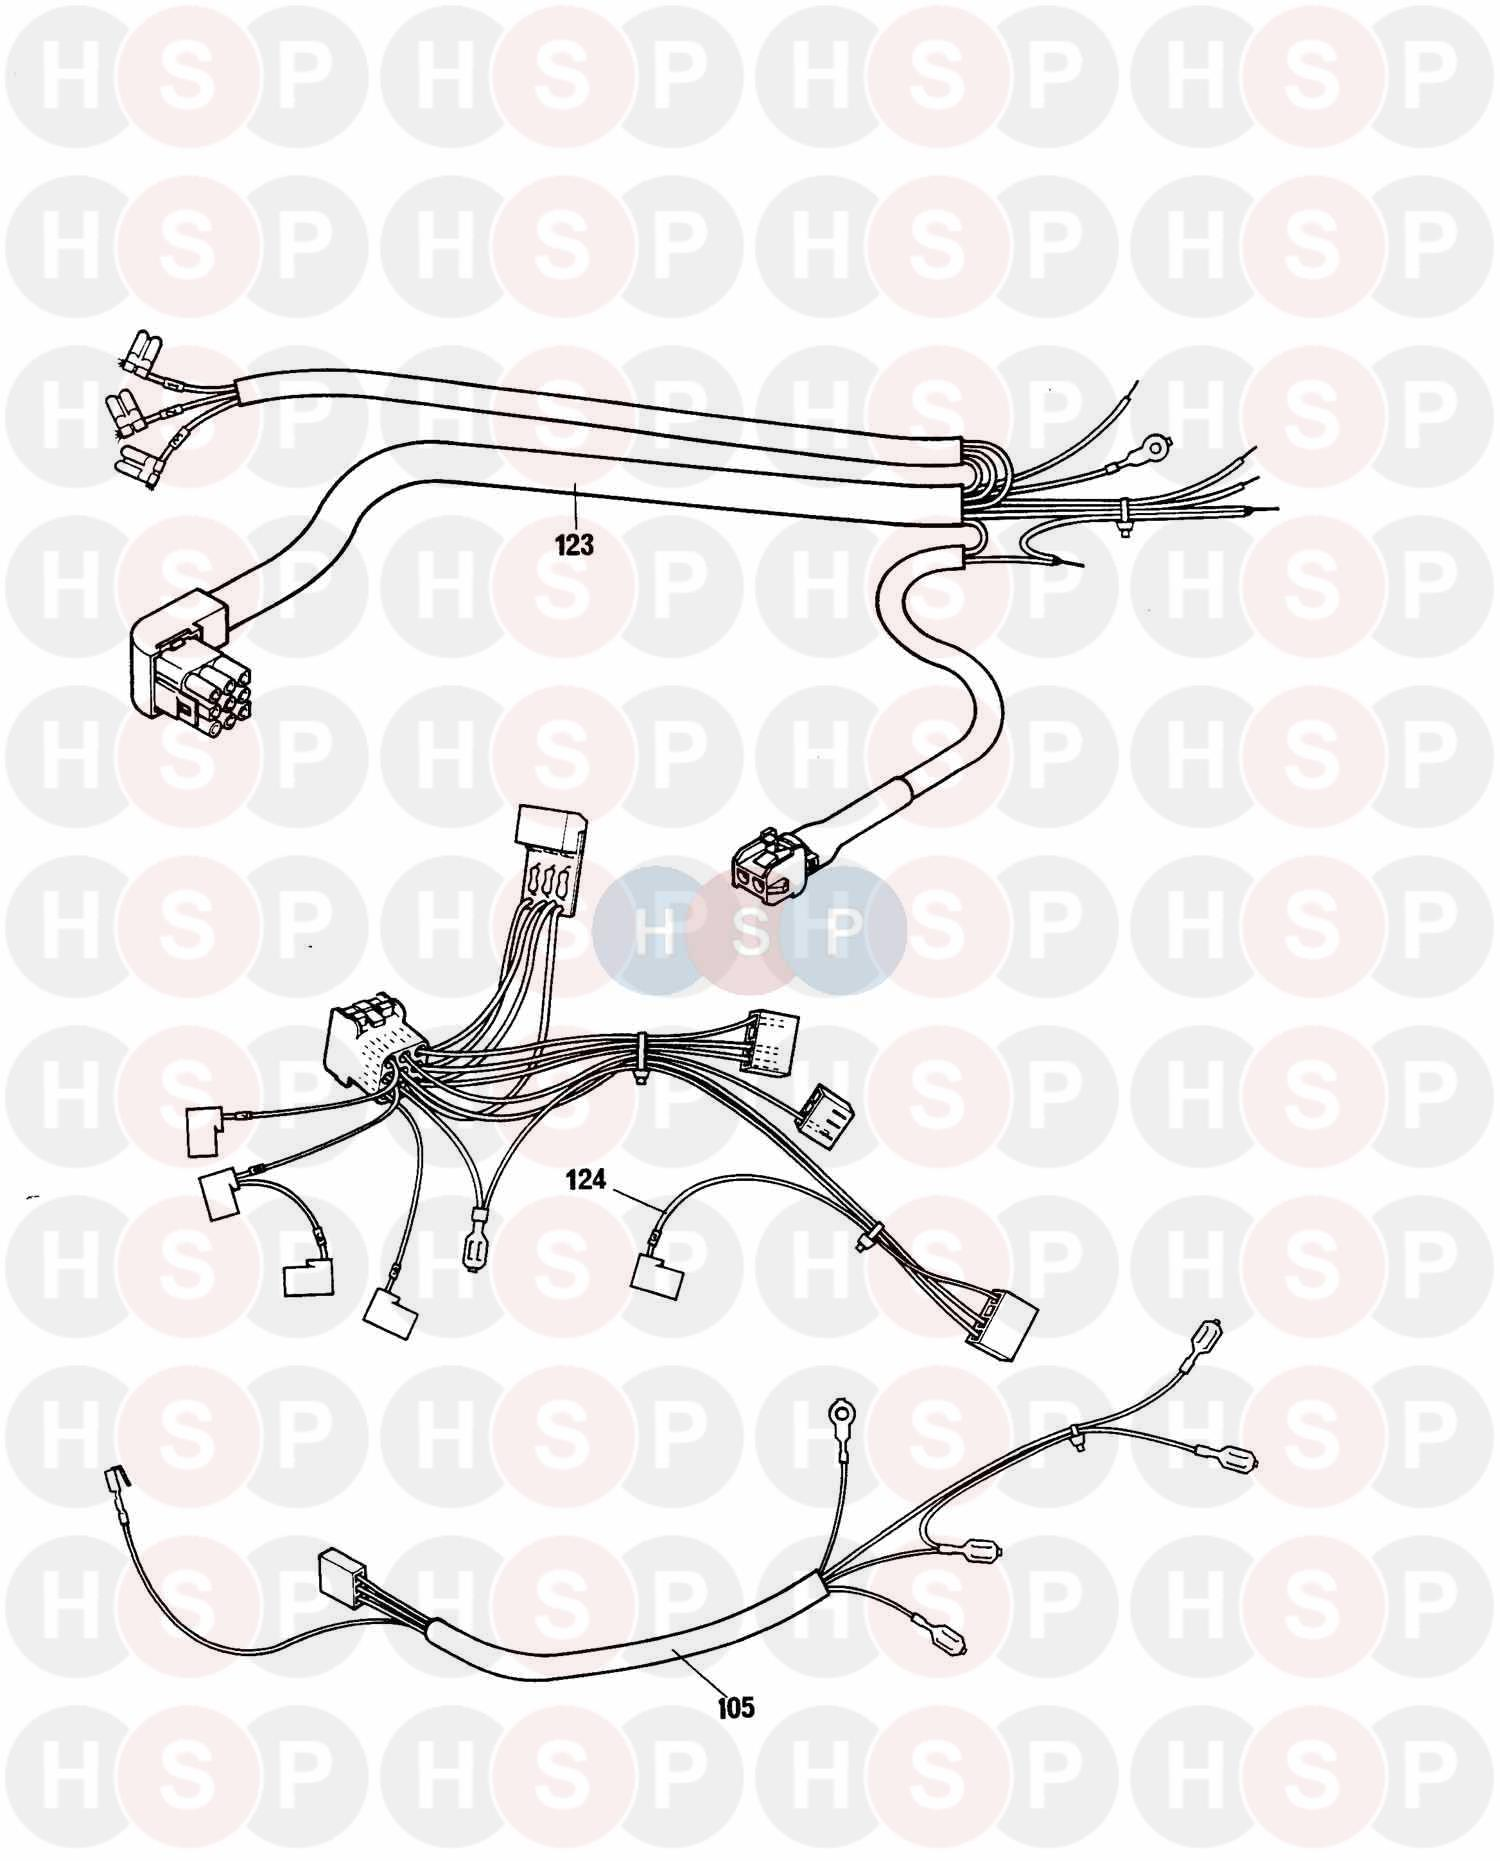 Baxi Solo Wm 50 4 Pf Ss Wiring Harness Diagram Heating Spare Parts Diagrams Click The To Open It On A New Page